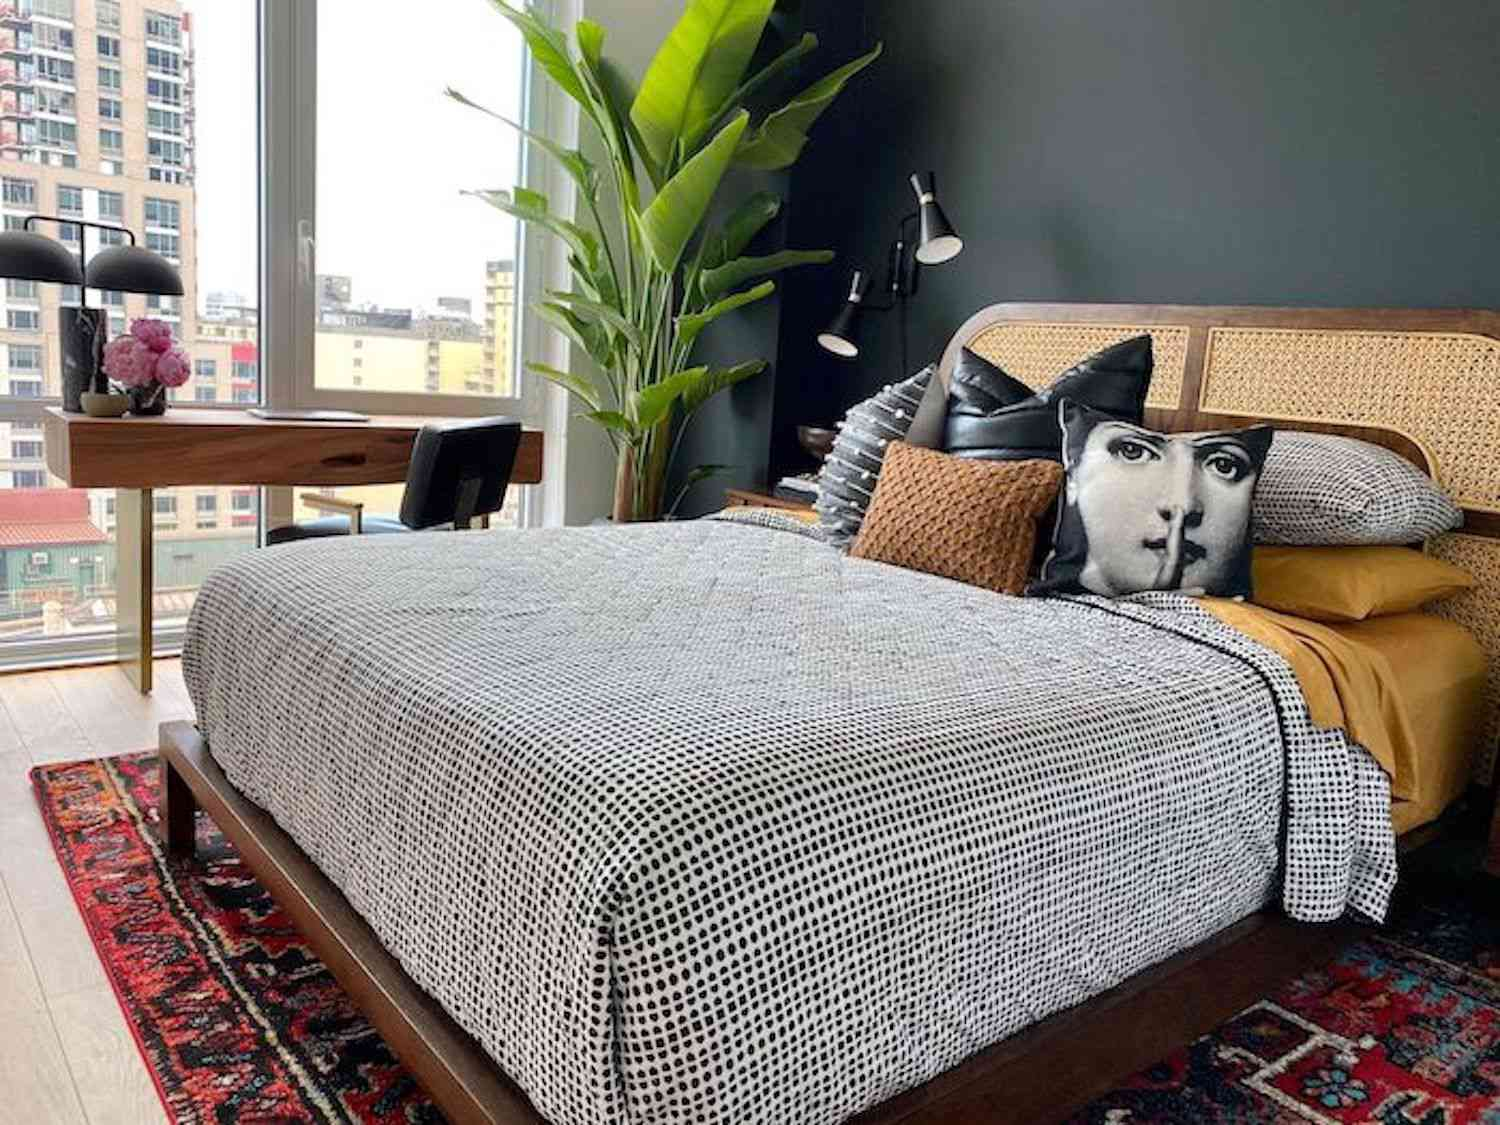 modern bedroom with wicker headboard, black and white polka dot comforter, red pattern rug, large plant in corner